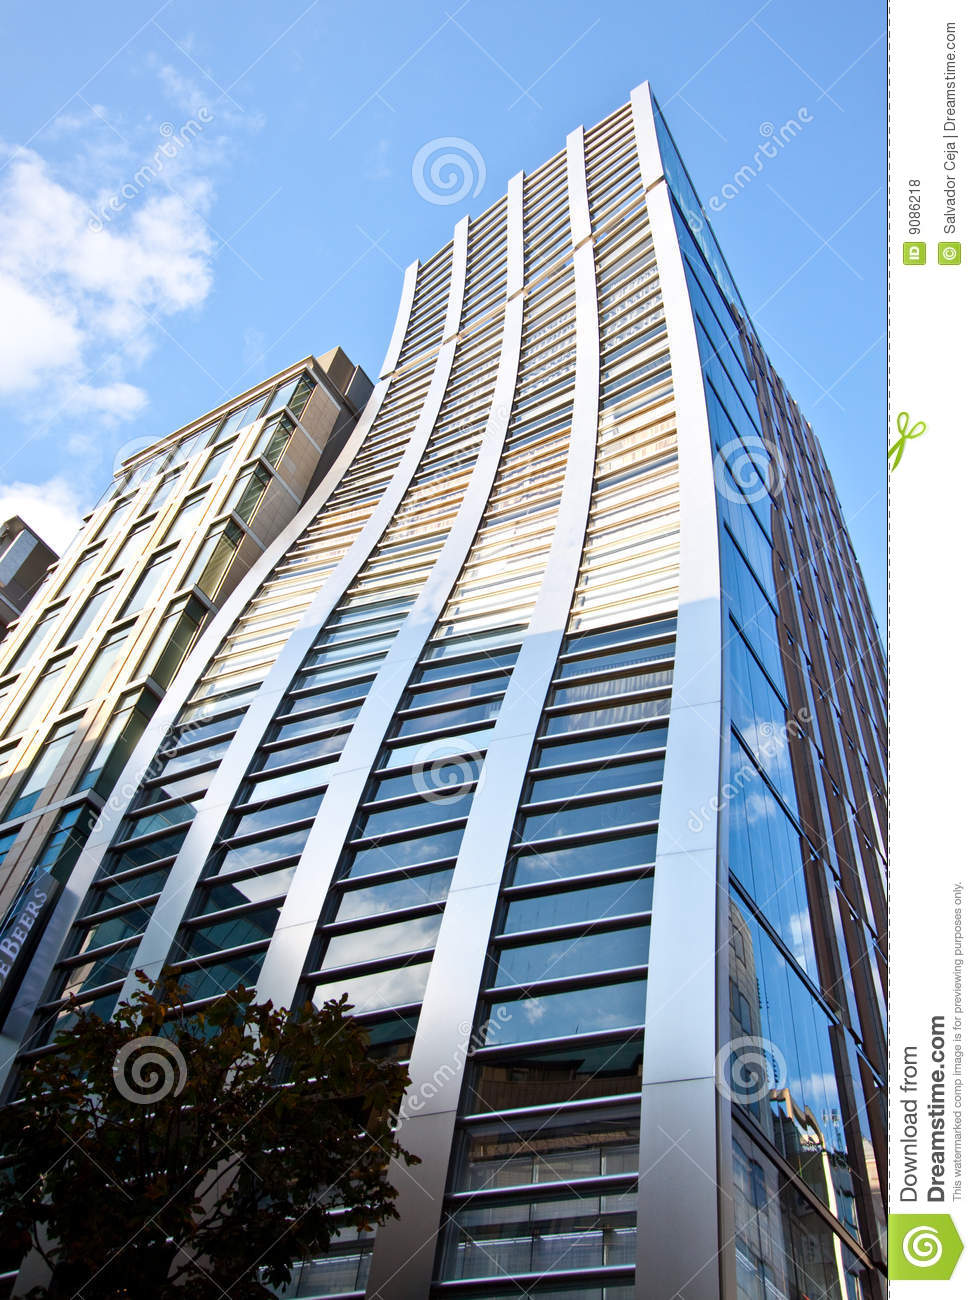 High rise office building in japan royalty free stock for Modern high rise building design